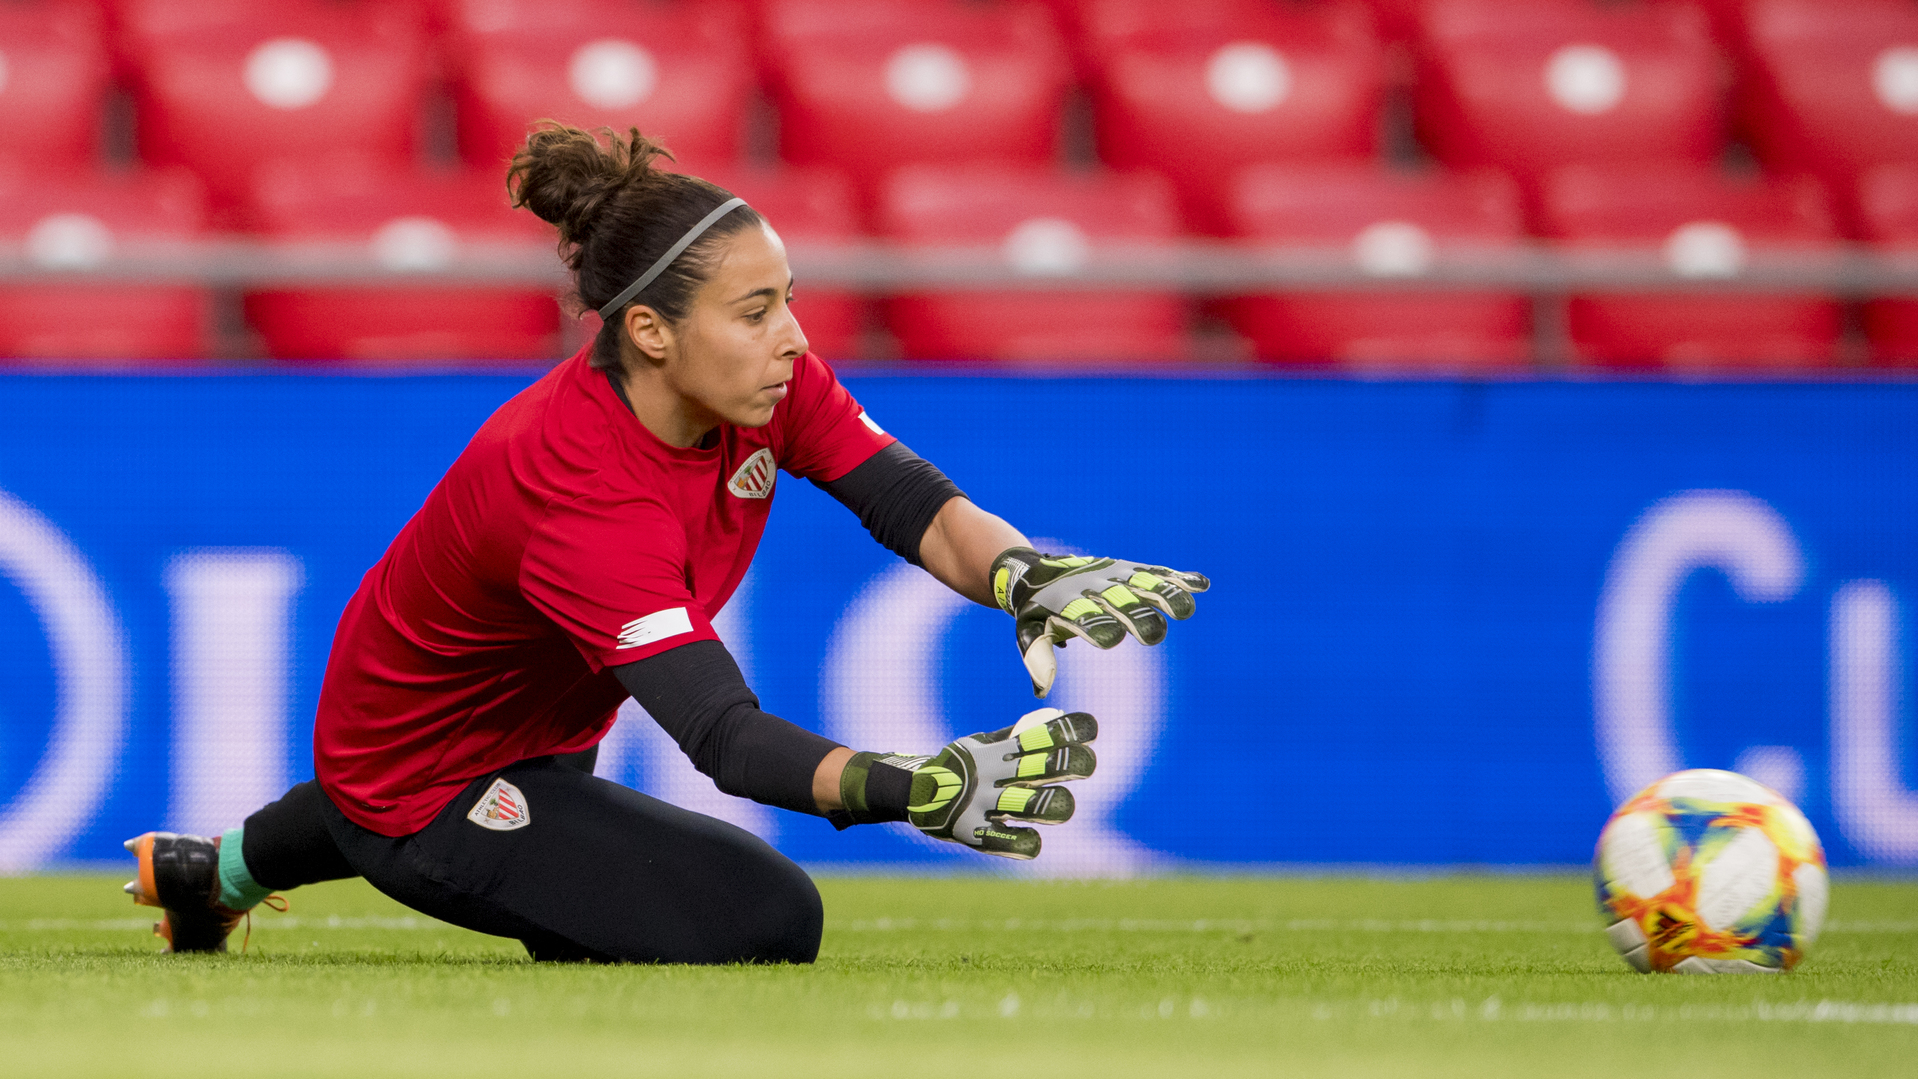 Ainhoa Tirapu will be training our young goalkeepers